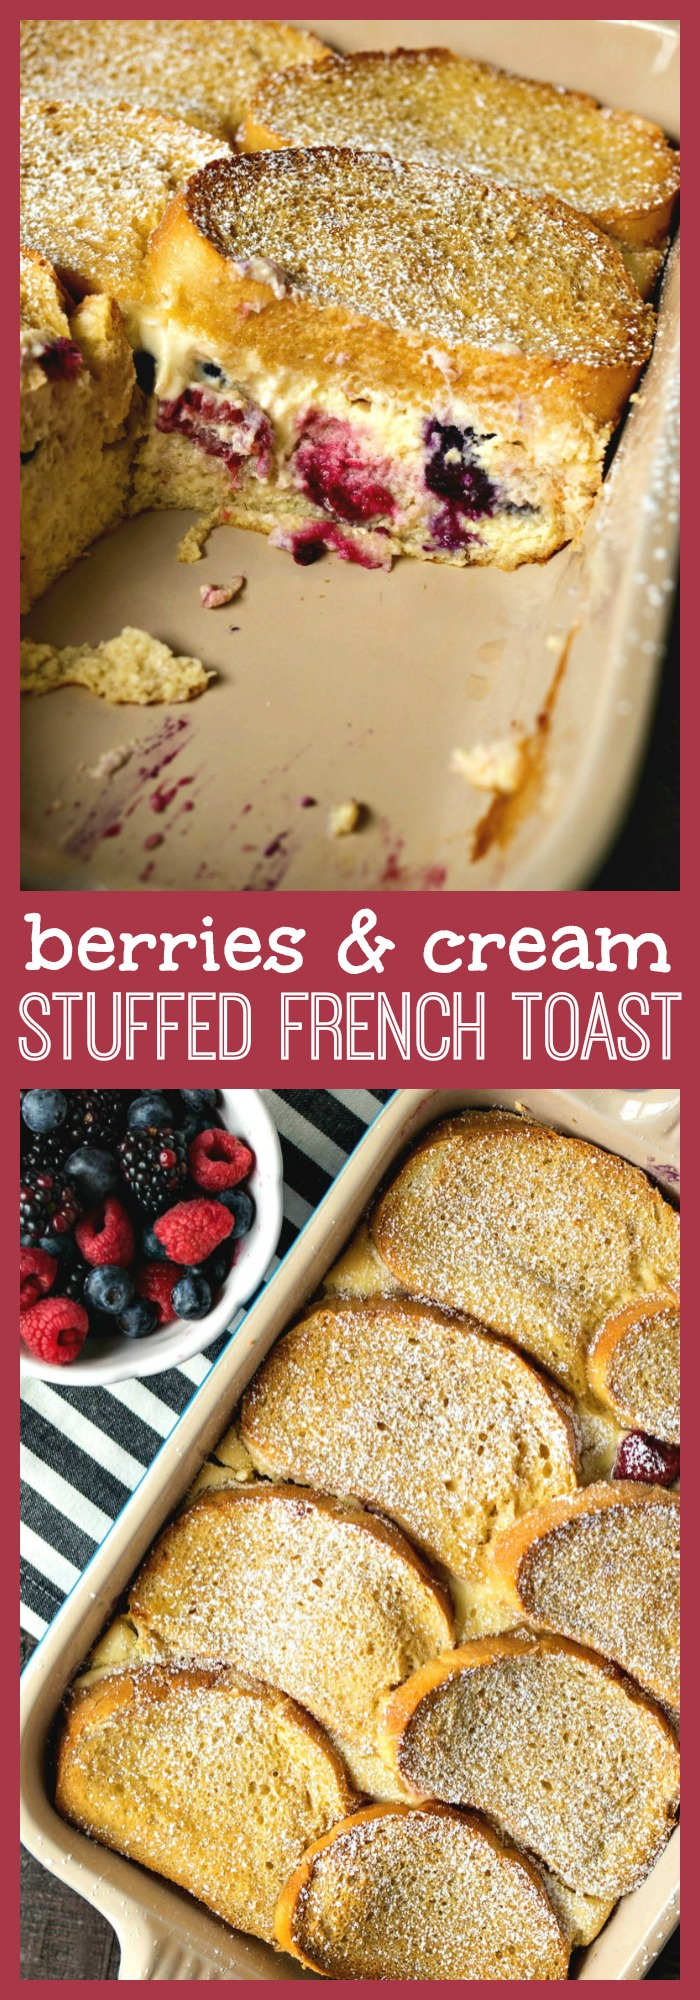 Berries & Cream Stuffed French Toast Casserole photo collage